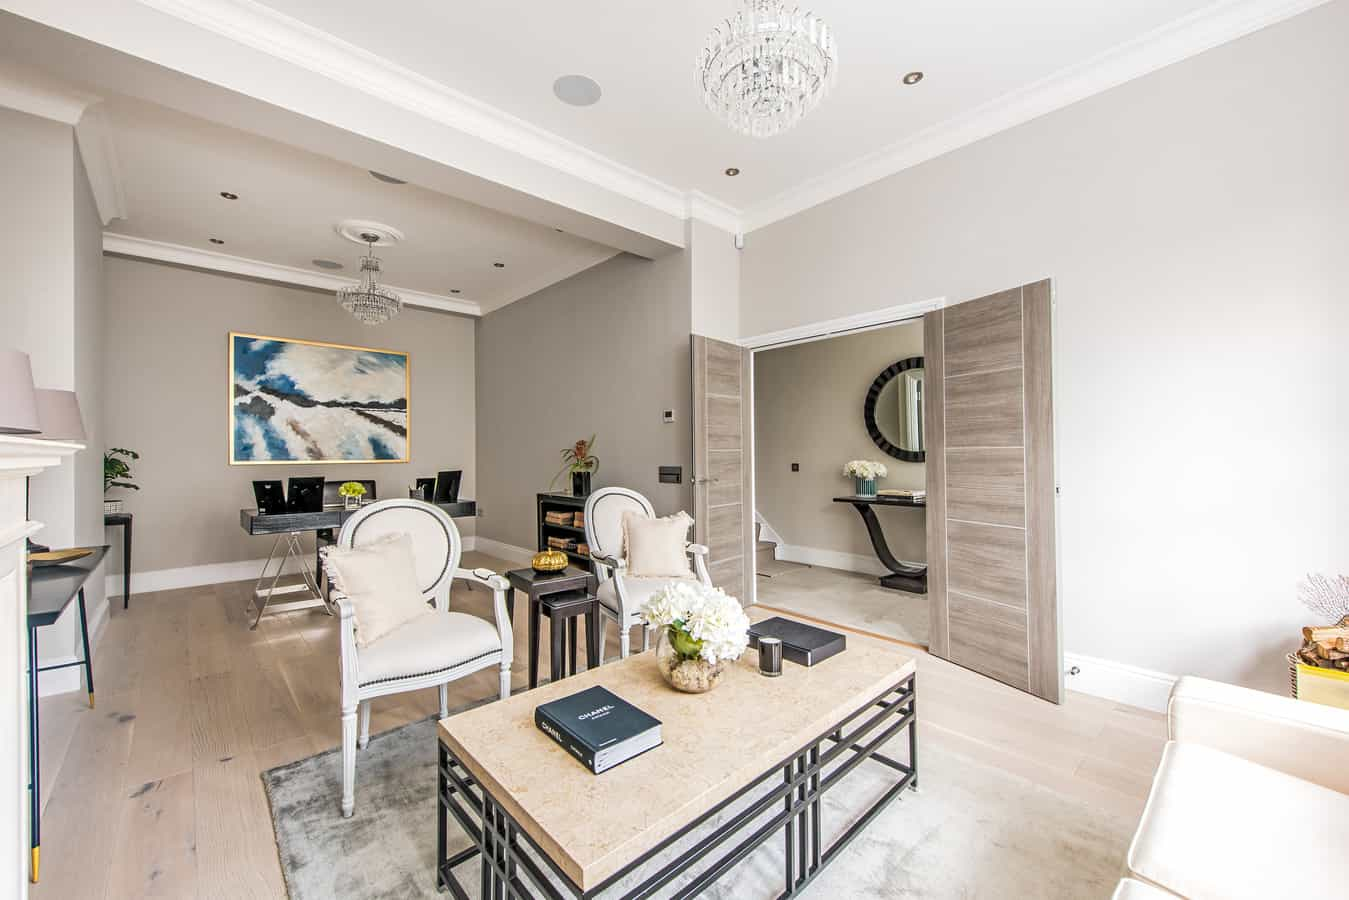 Finlay-Street-home-staged-by-cullum-design-london-uk-56-32